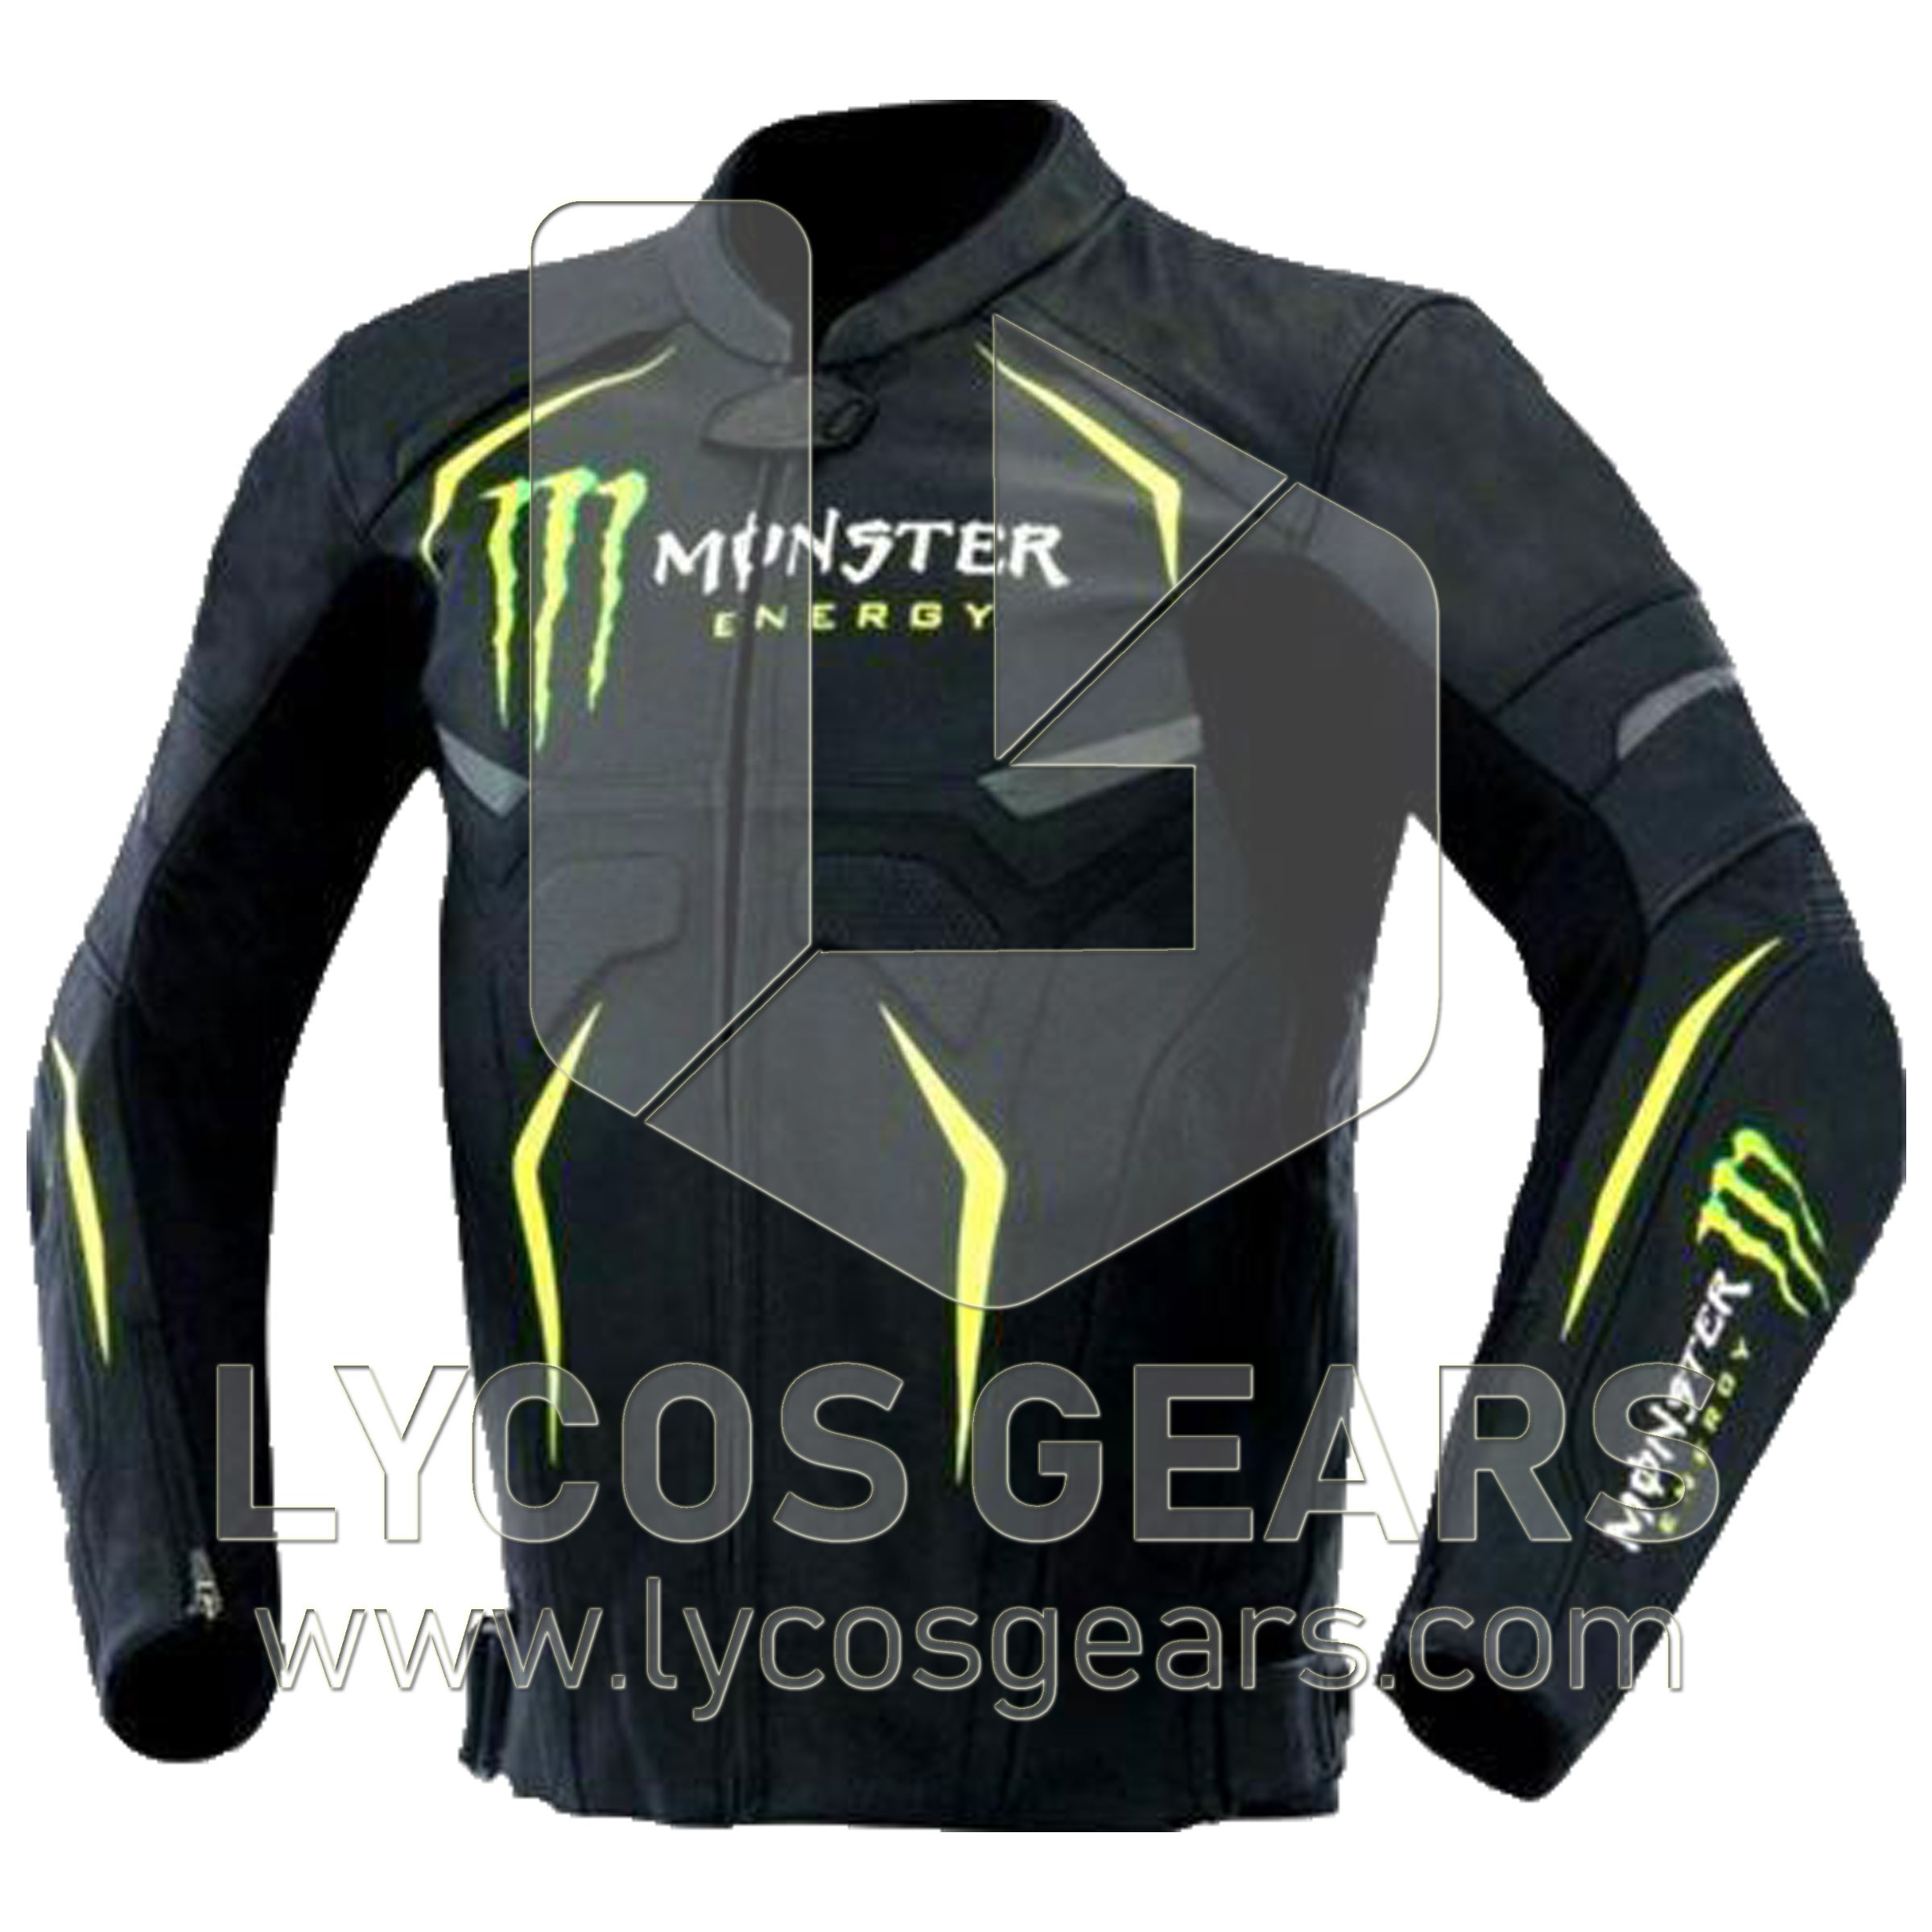 af0438da Monster Energy Motorcycle Leather Jacket - Lycos Gears